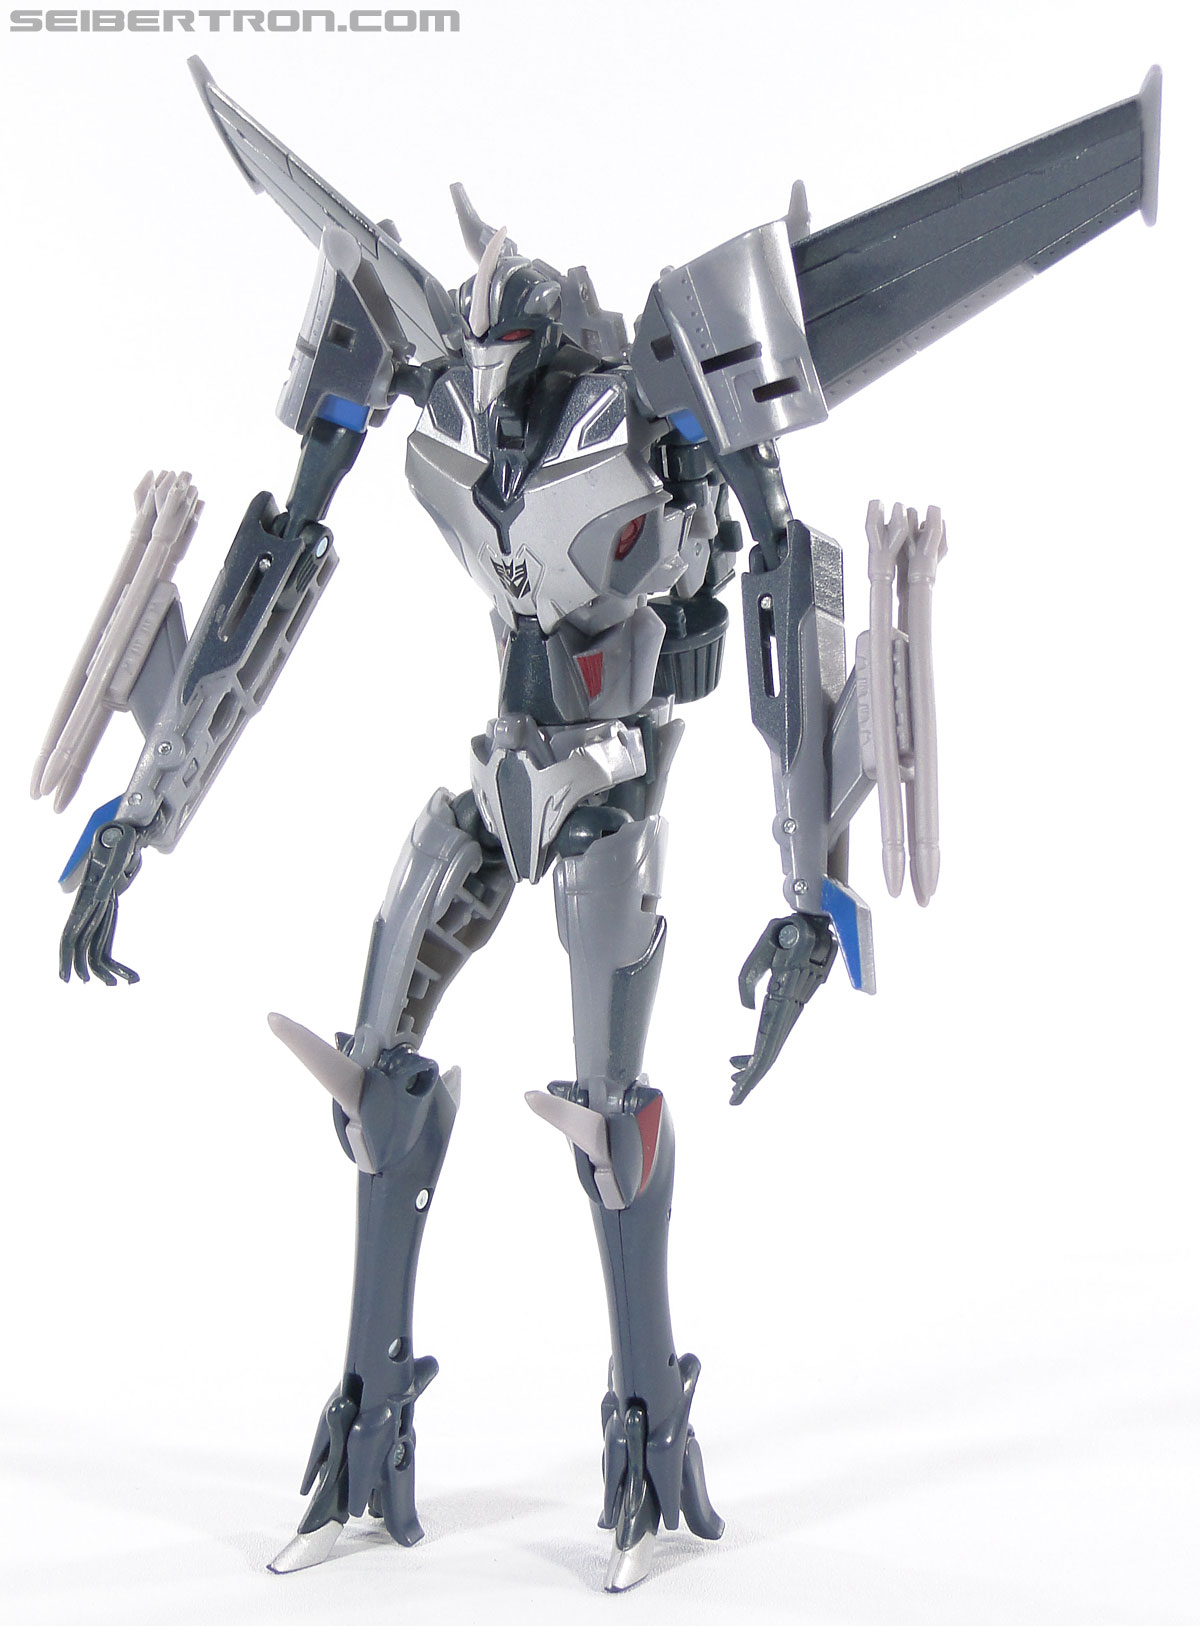 Transformers Prime: First Edition Starscream (Image #71 of 136)